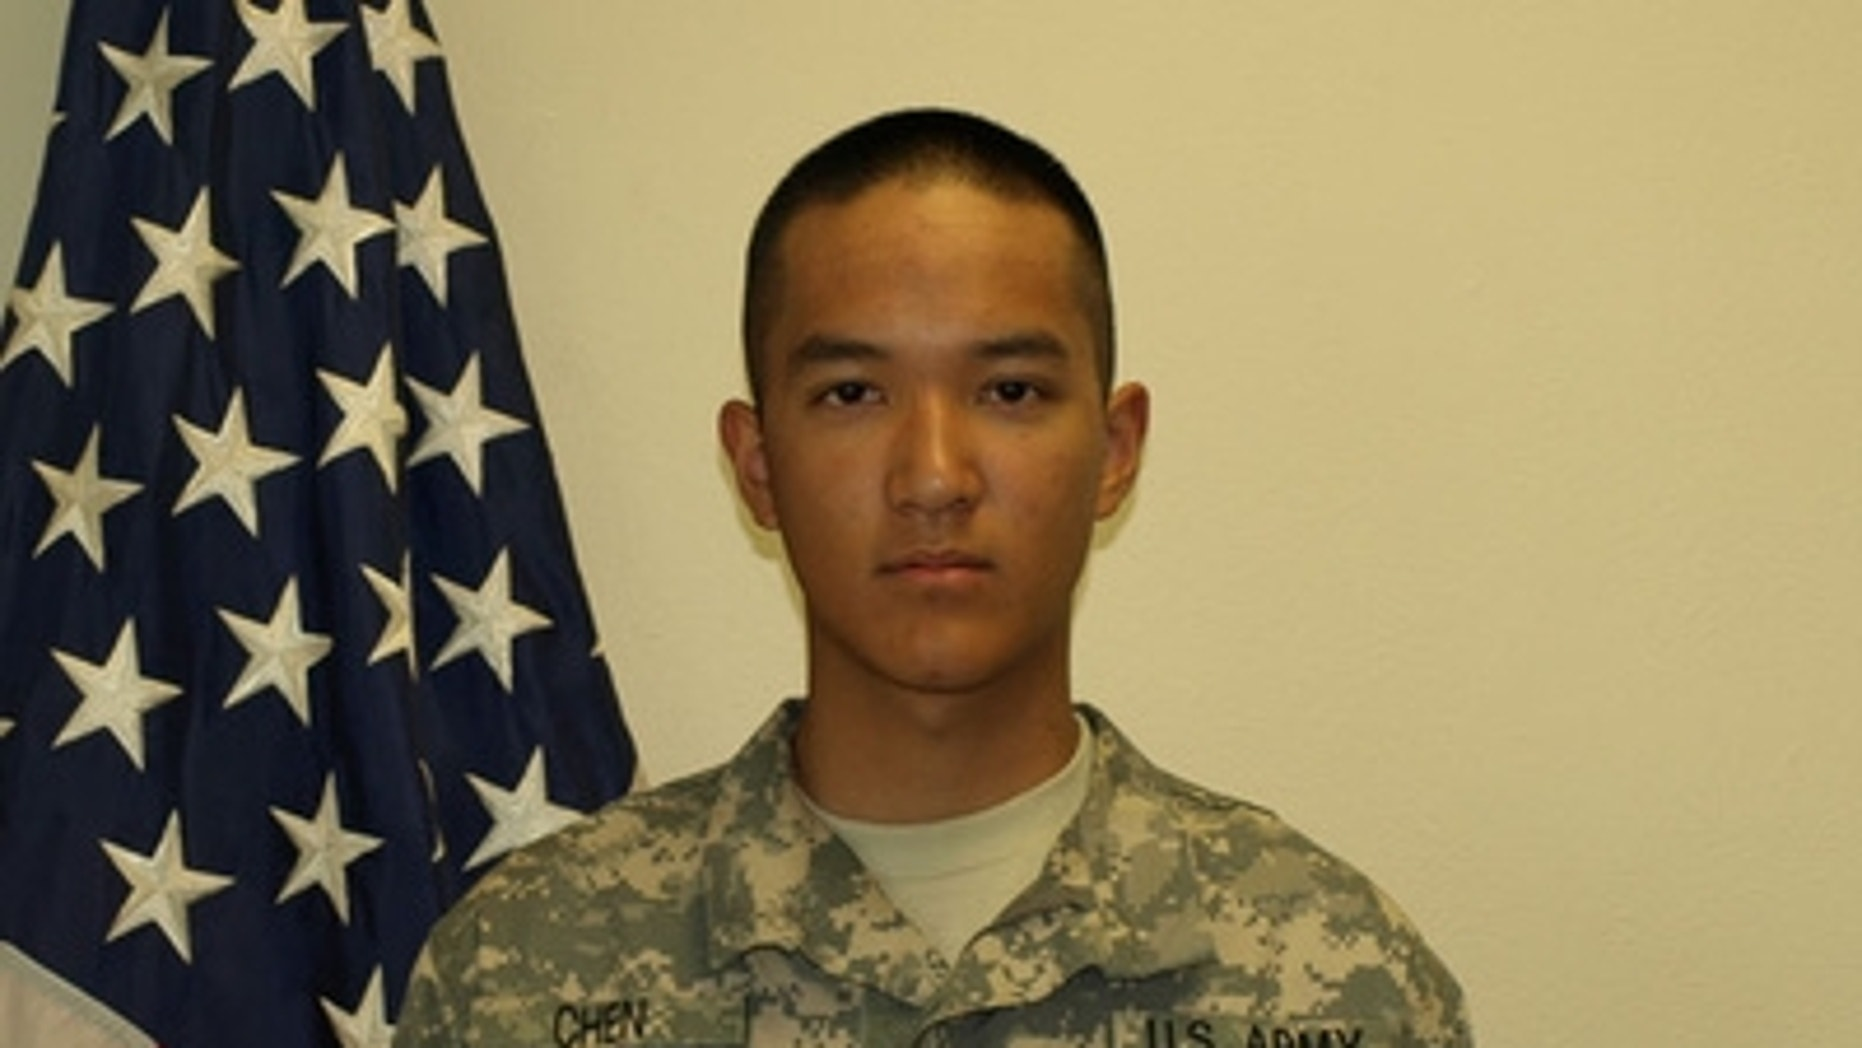 This undated photo, obtained by Fox affiliate WNYW-TV, shows 19-year-old Pvt. Danny Chen.